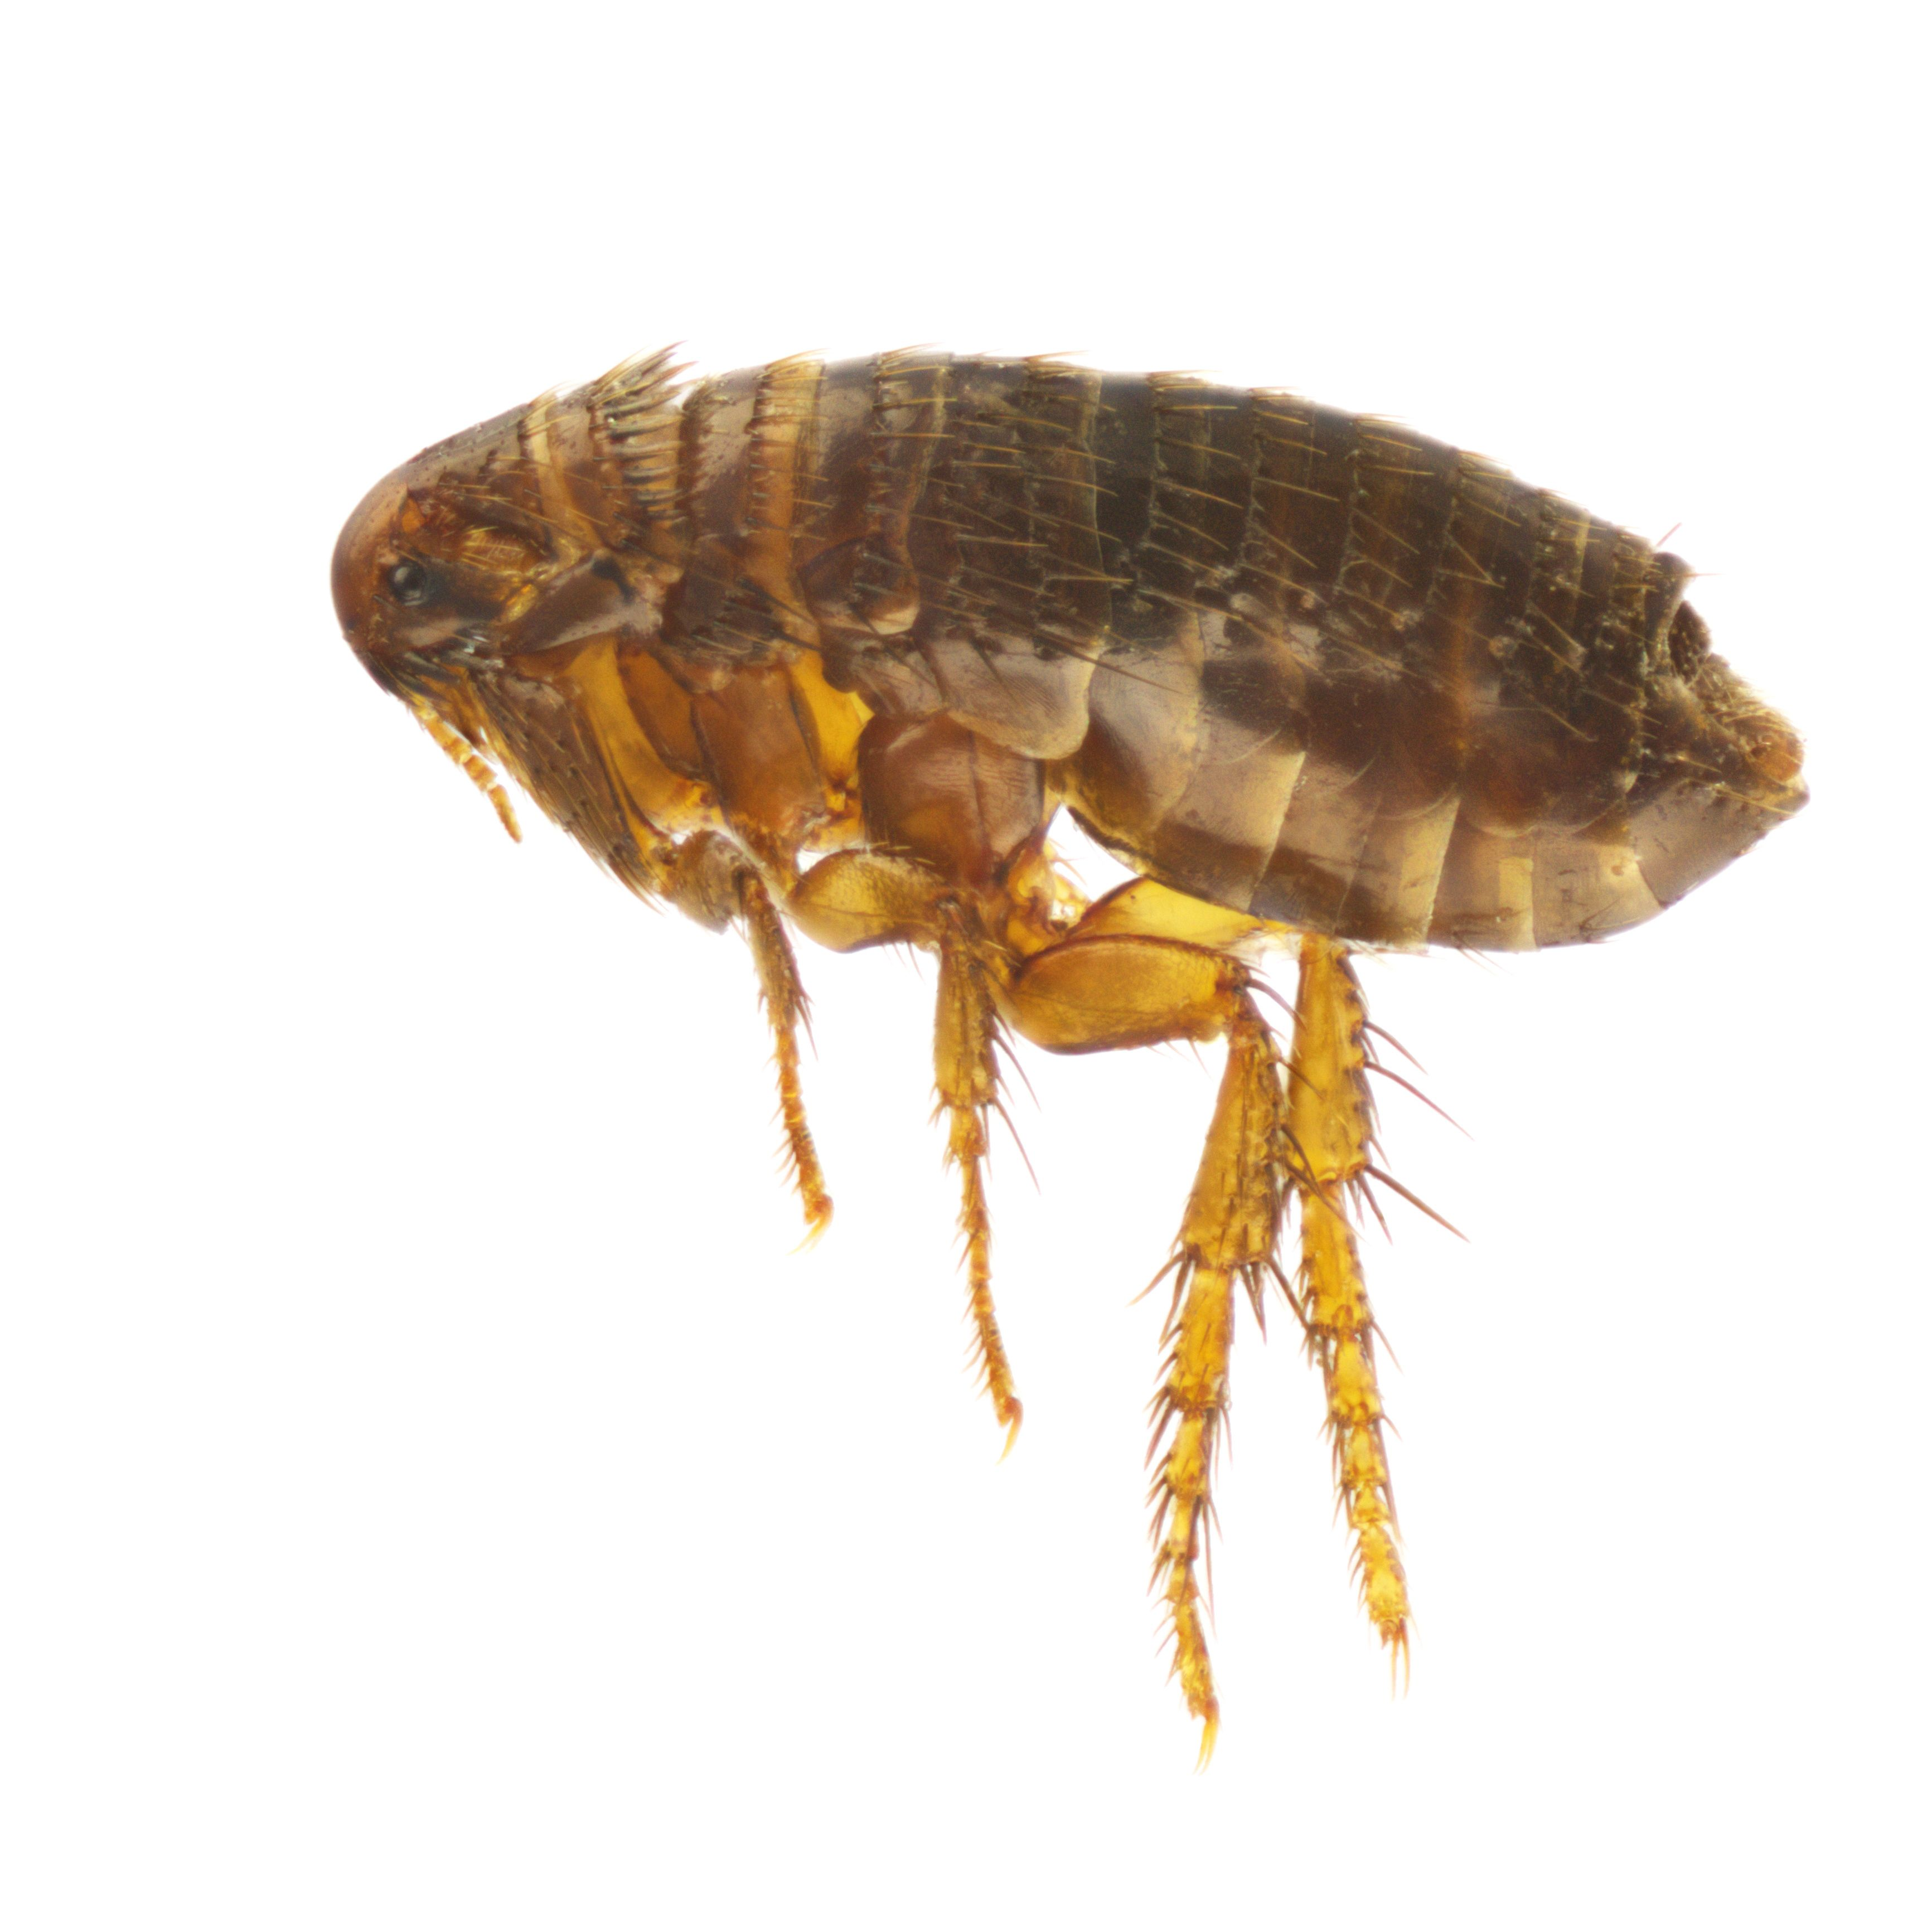 show me a picture of a flea